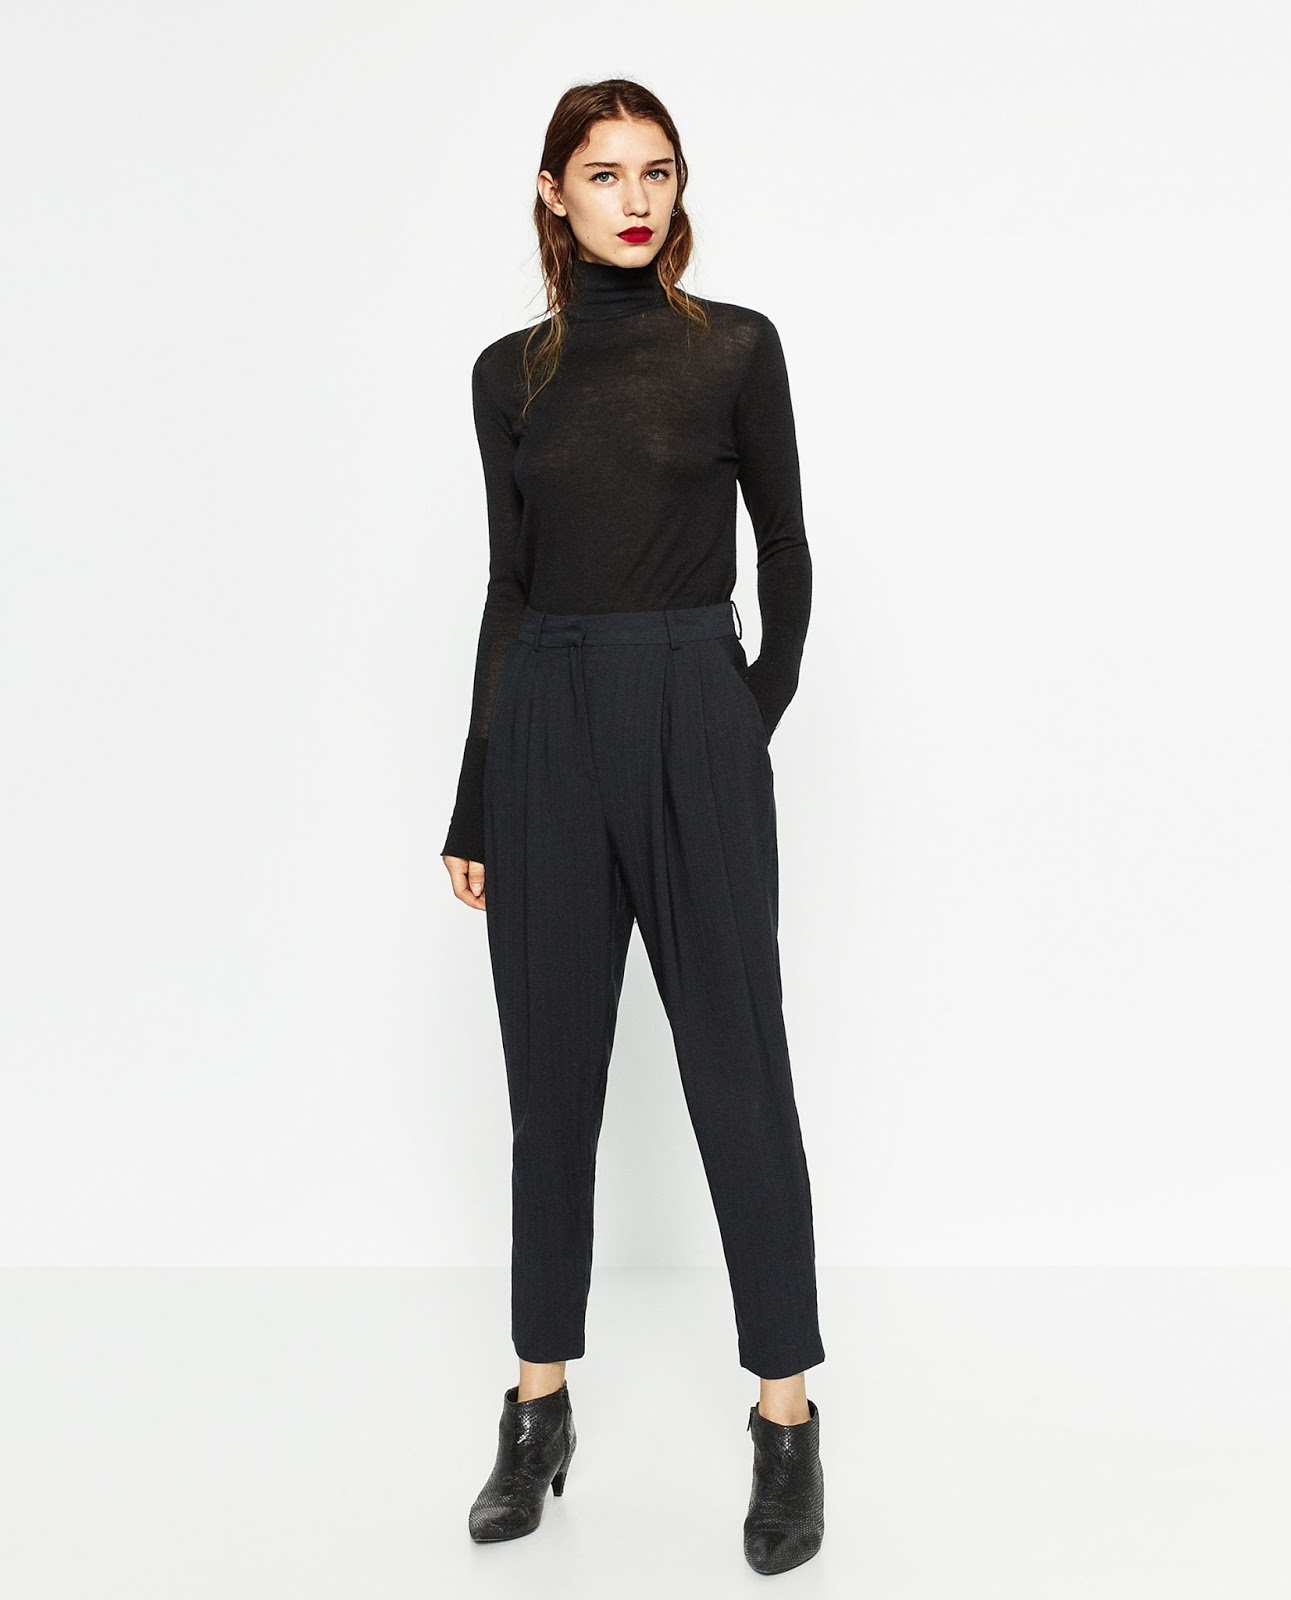 Zara high waisted carrot pants